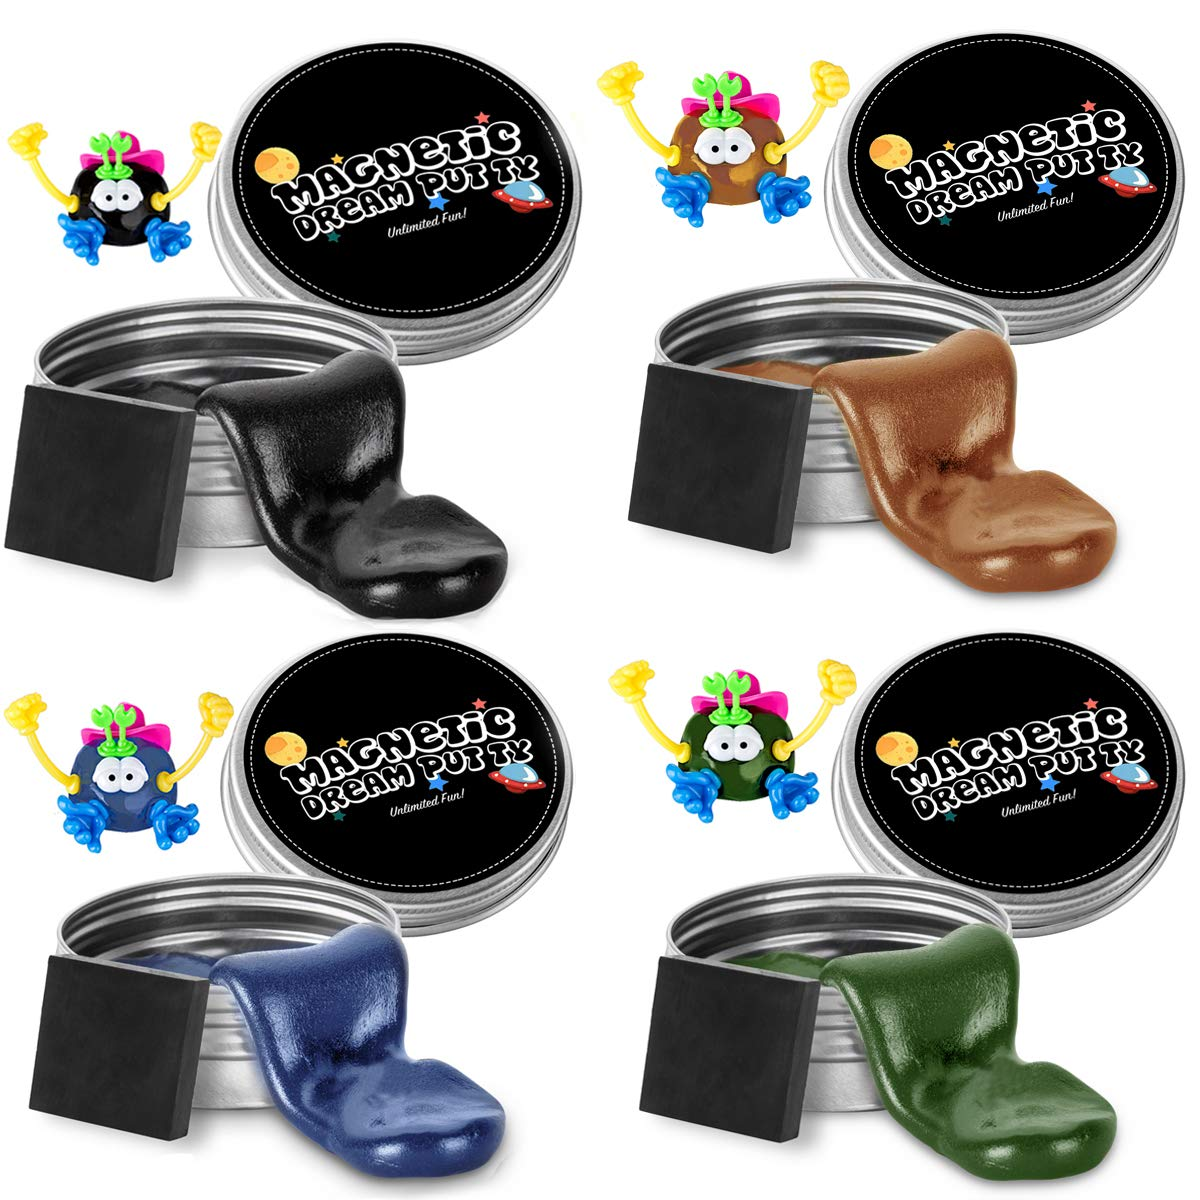 ILC Magnetic Putty Playdough Creative Magnet Toy Slime Stress Reliever for Kids and Adults for Fun (4 Pack) by ILC